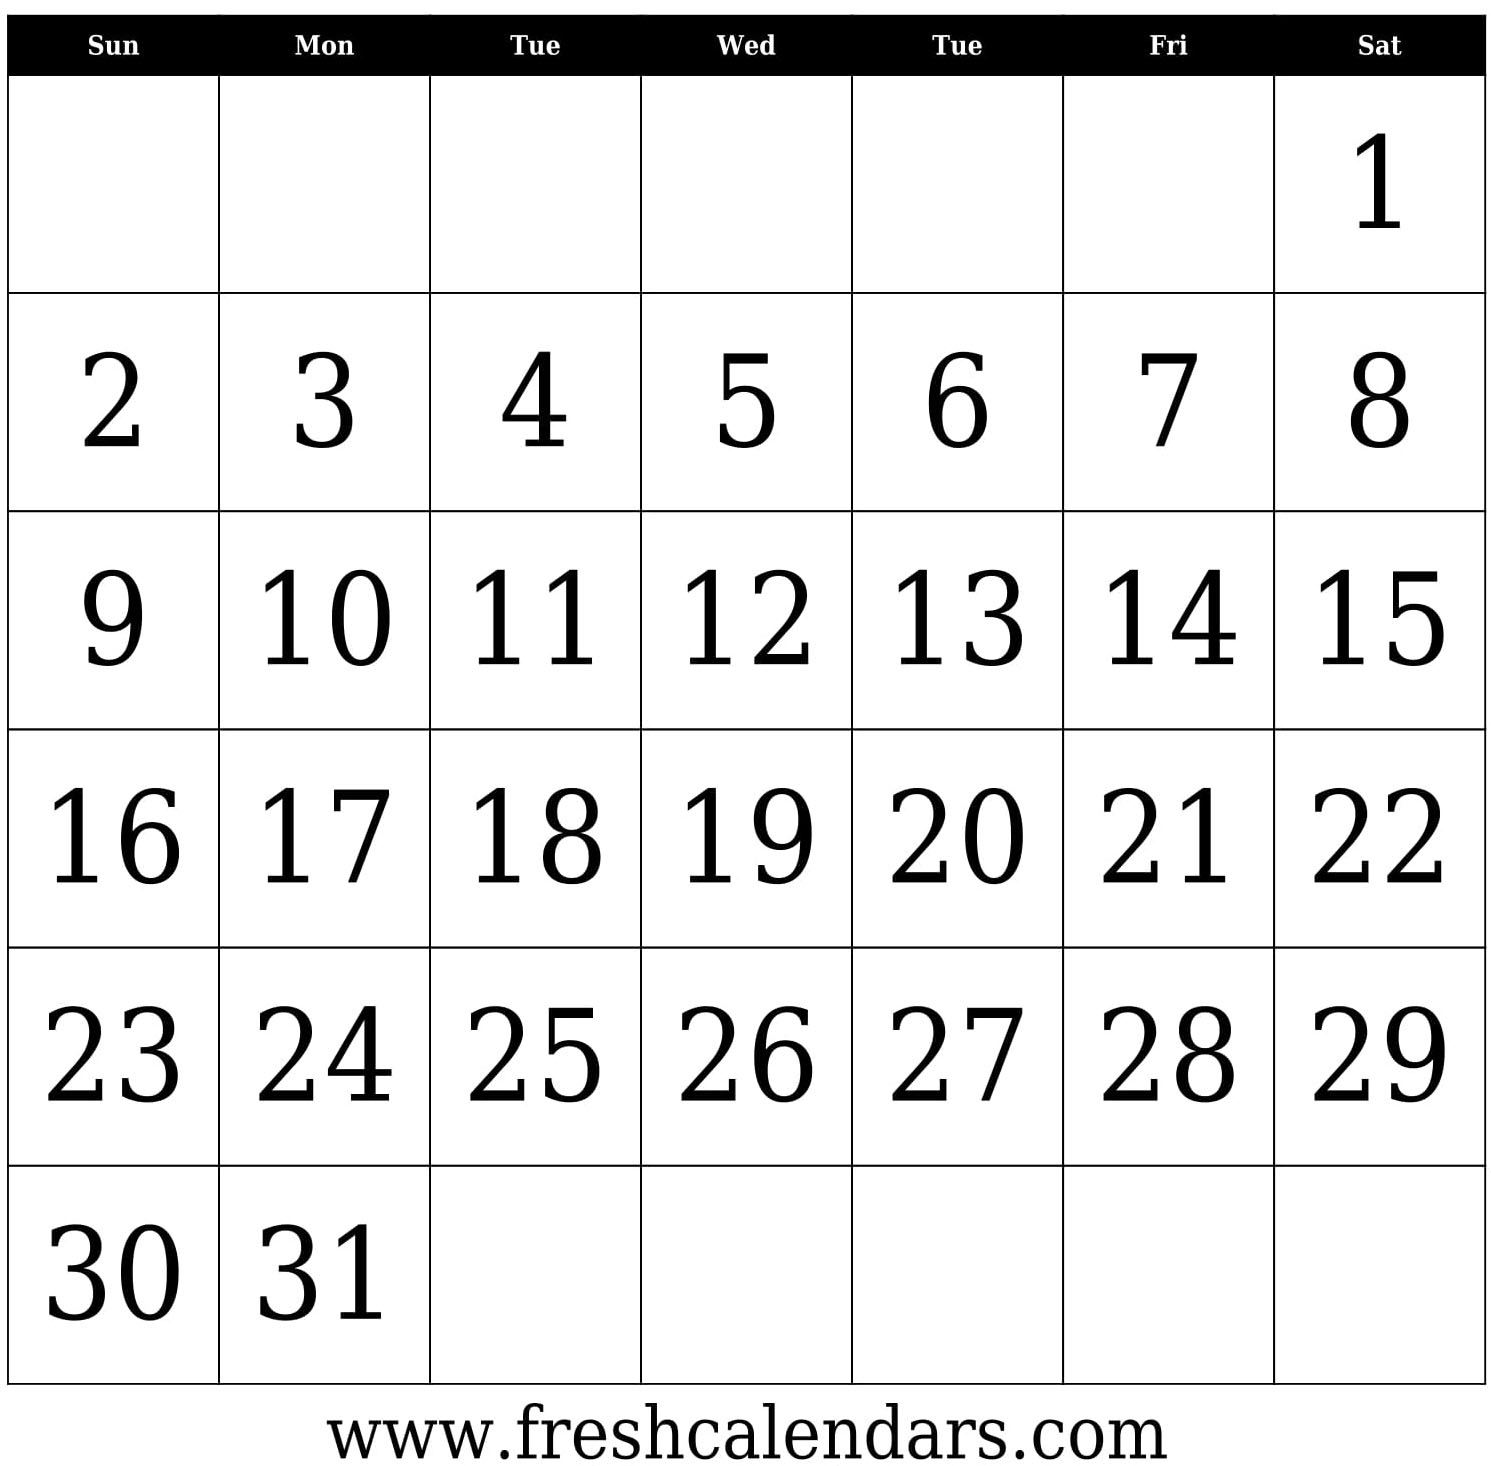 31 days blank calendar template bold